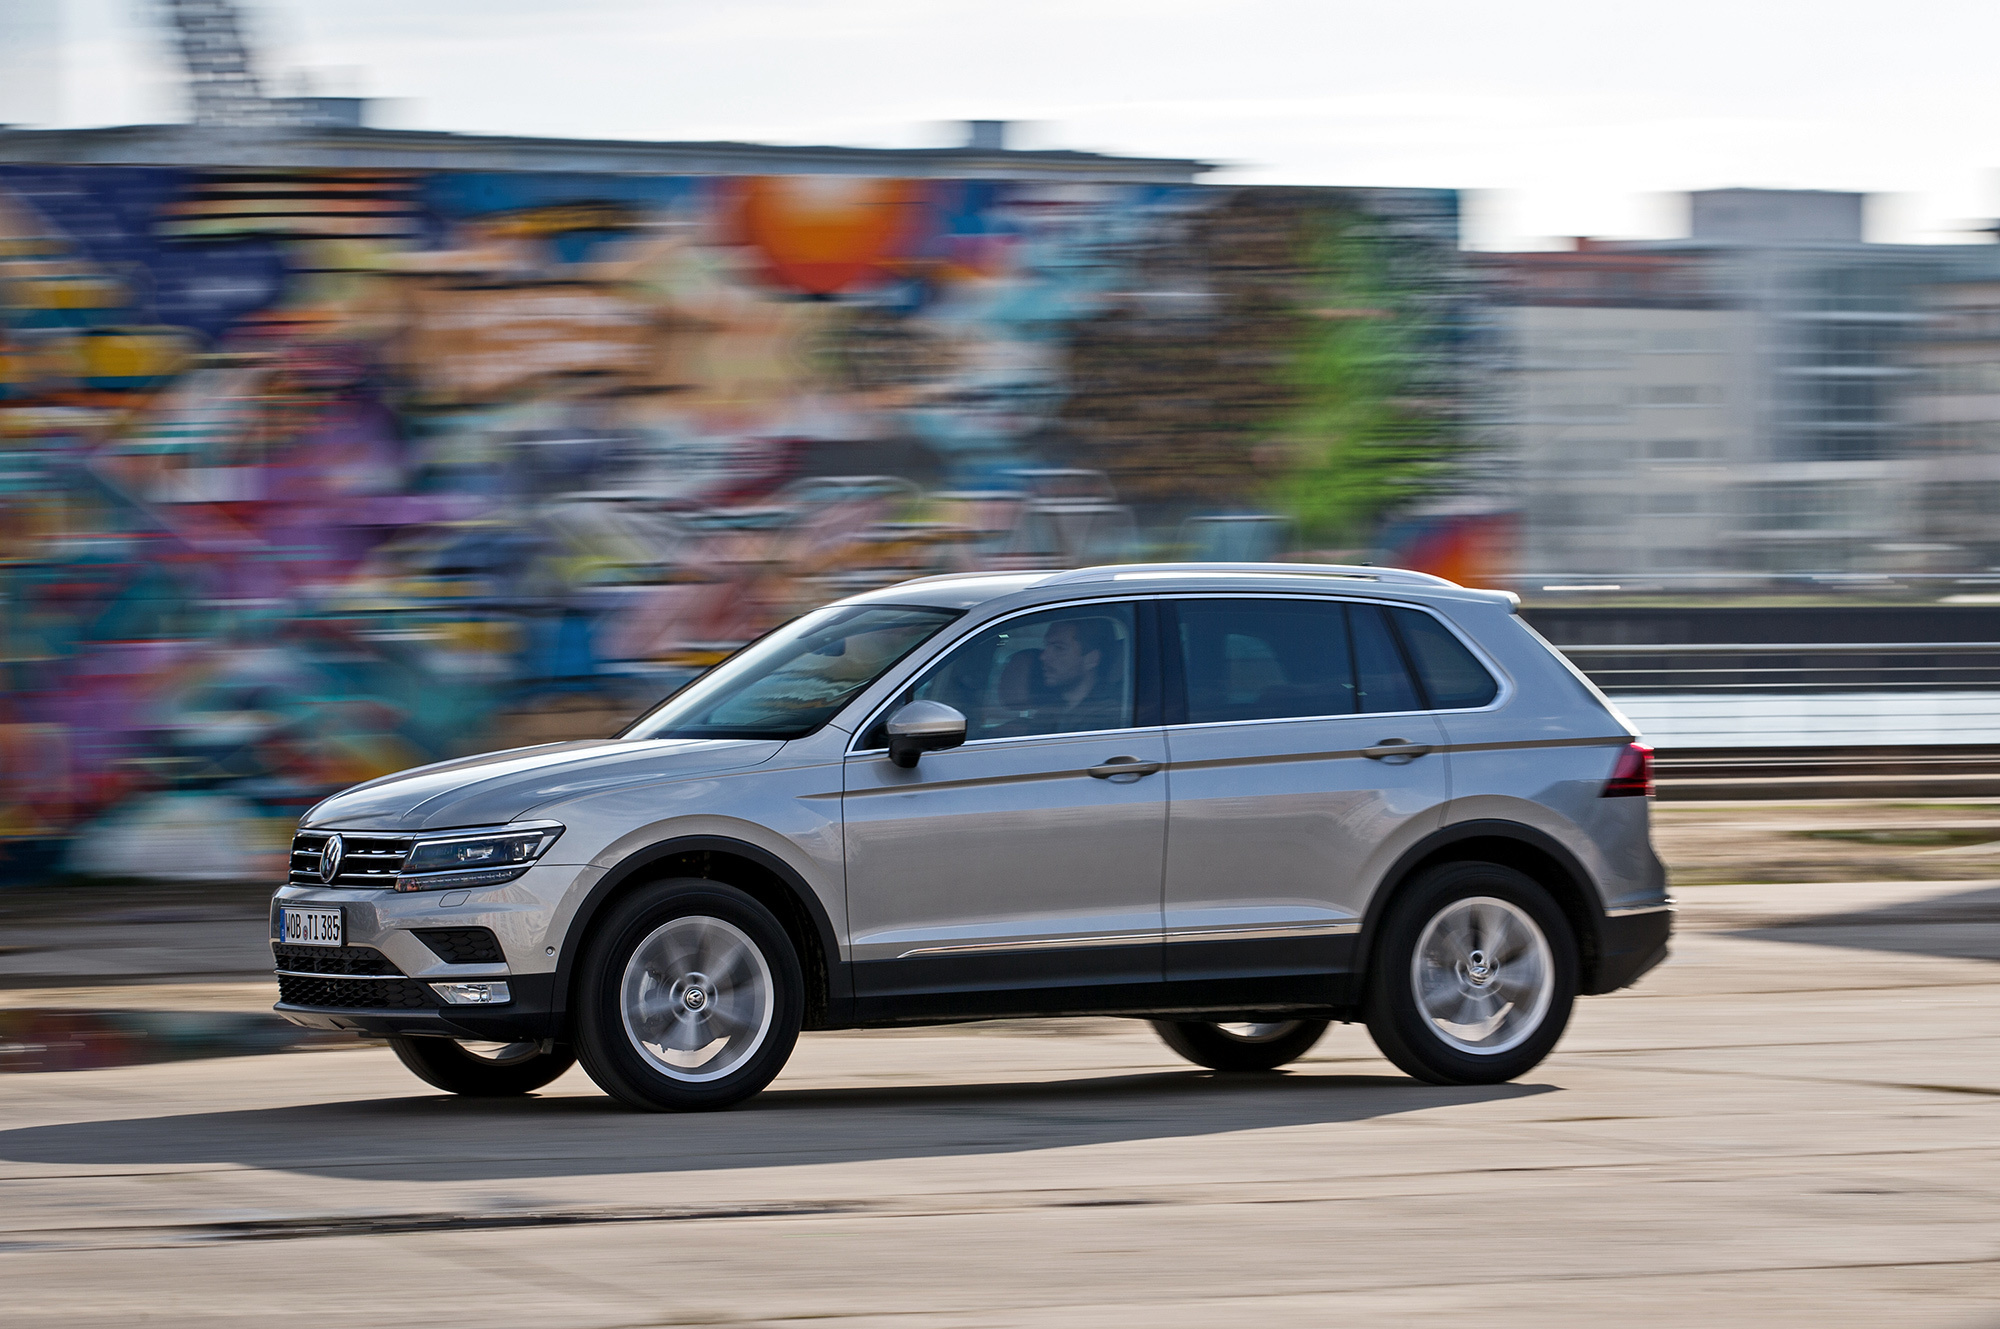 volkswagen tiguan 2016 wallpapers images photos pictures backgrounds. Black Bedroom Furniture Sets. Home Design Ideas